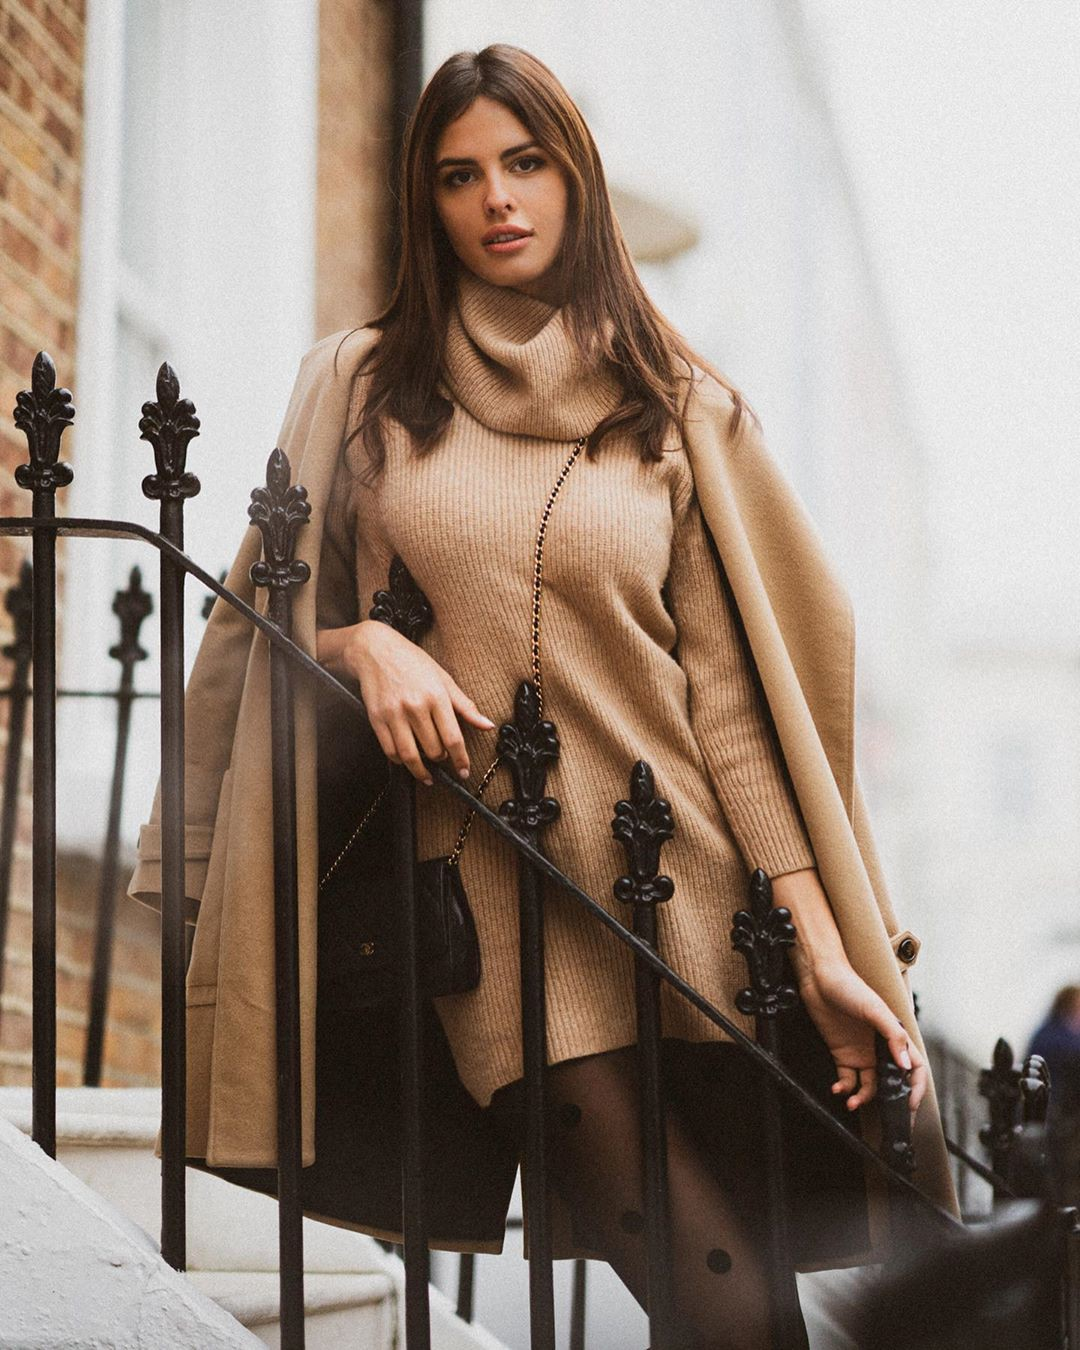 Bojana Krsmanovic fur dresses ideas, girls photoshoot, girls instgram photography